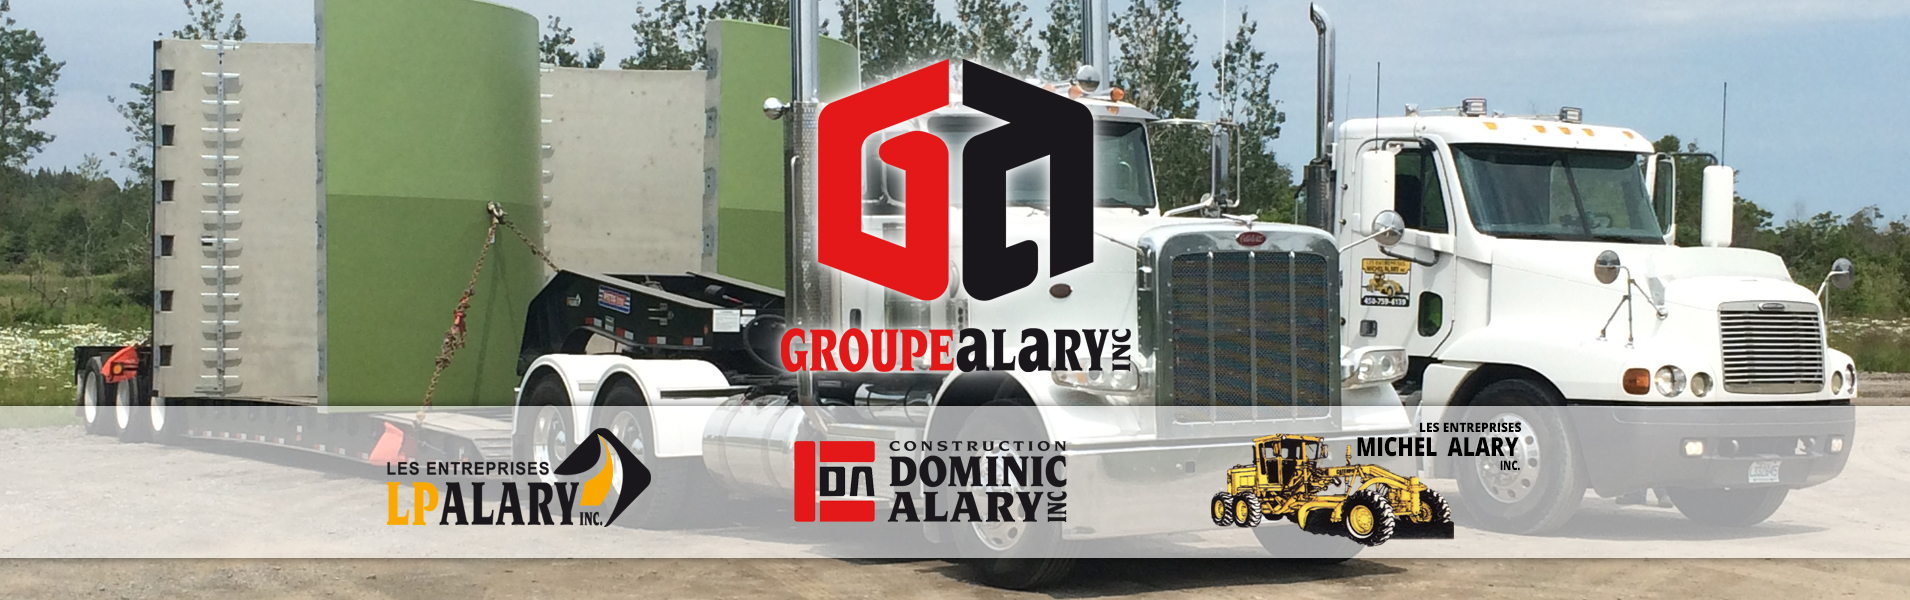 Groupe Alary | Les entreprises LP Alary, Construction Dominic Alary, Les entreprises Michel Alary